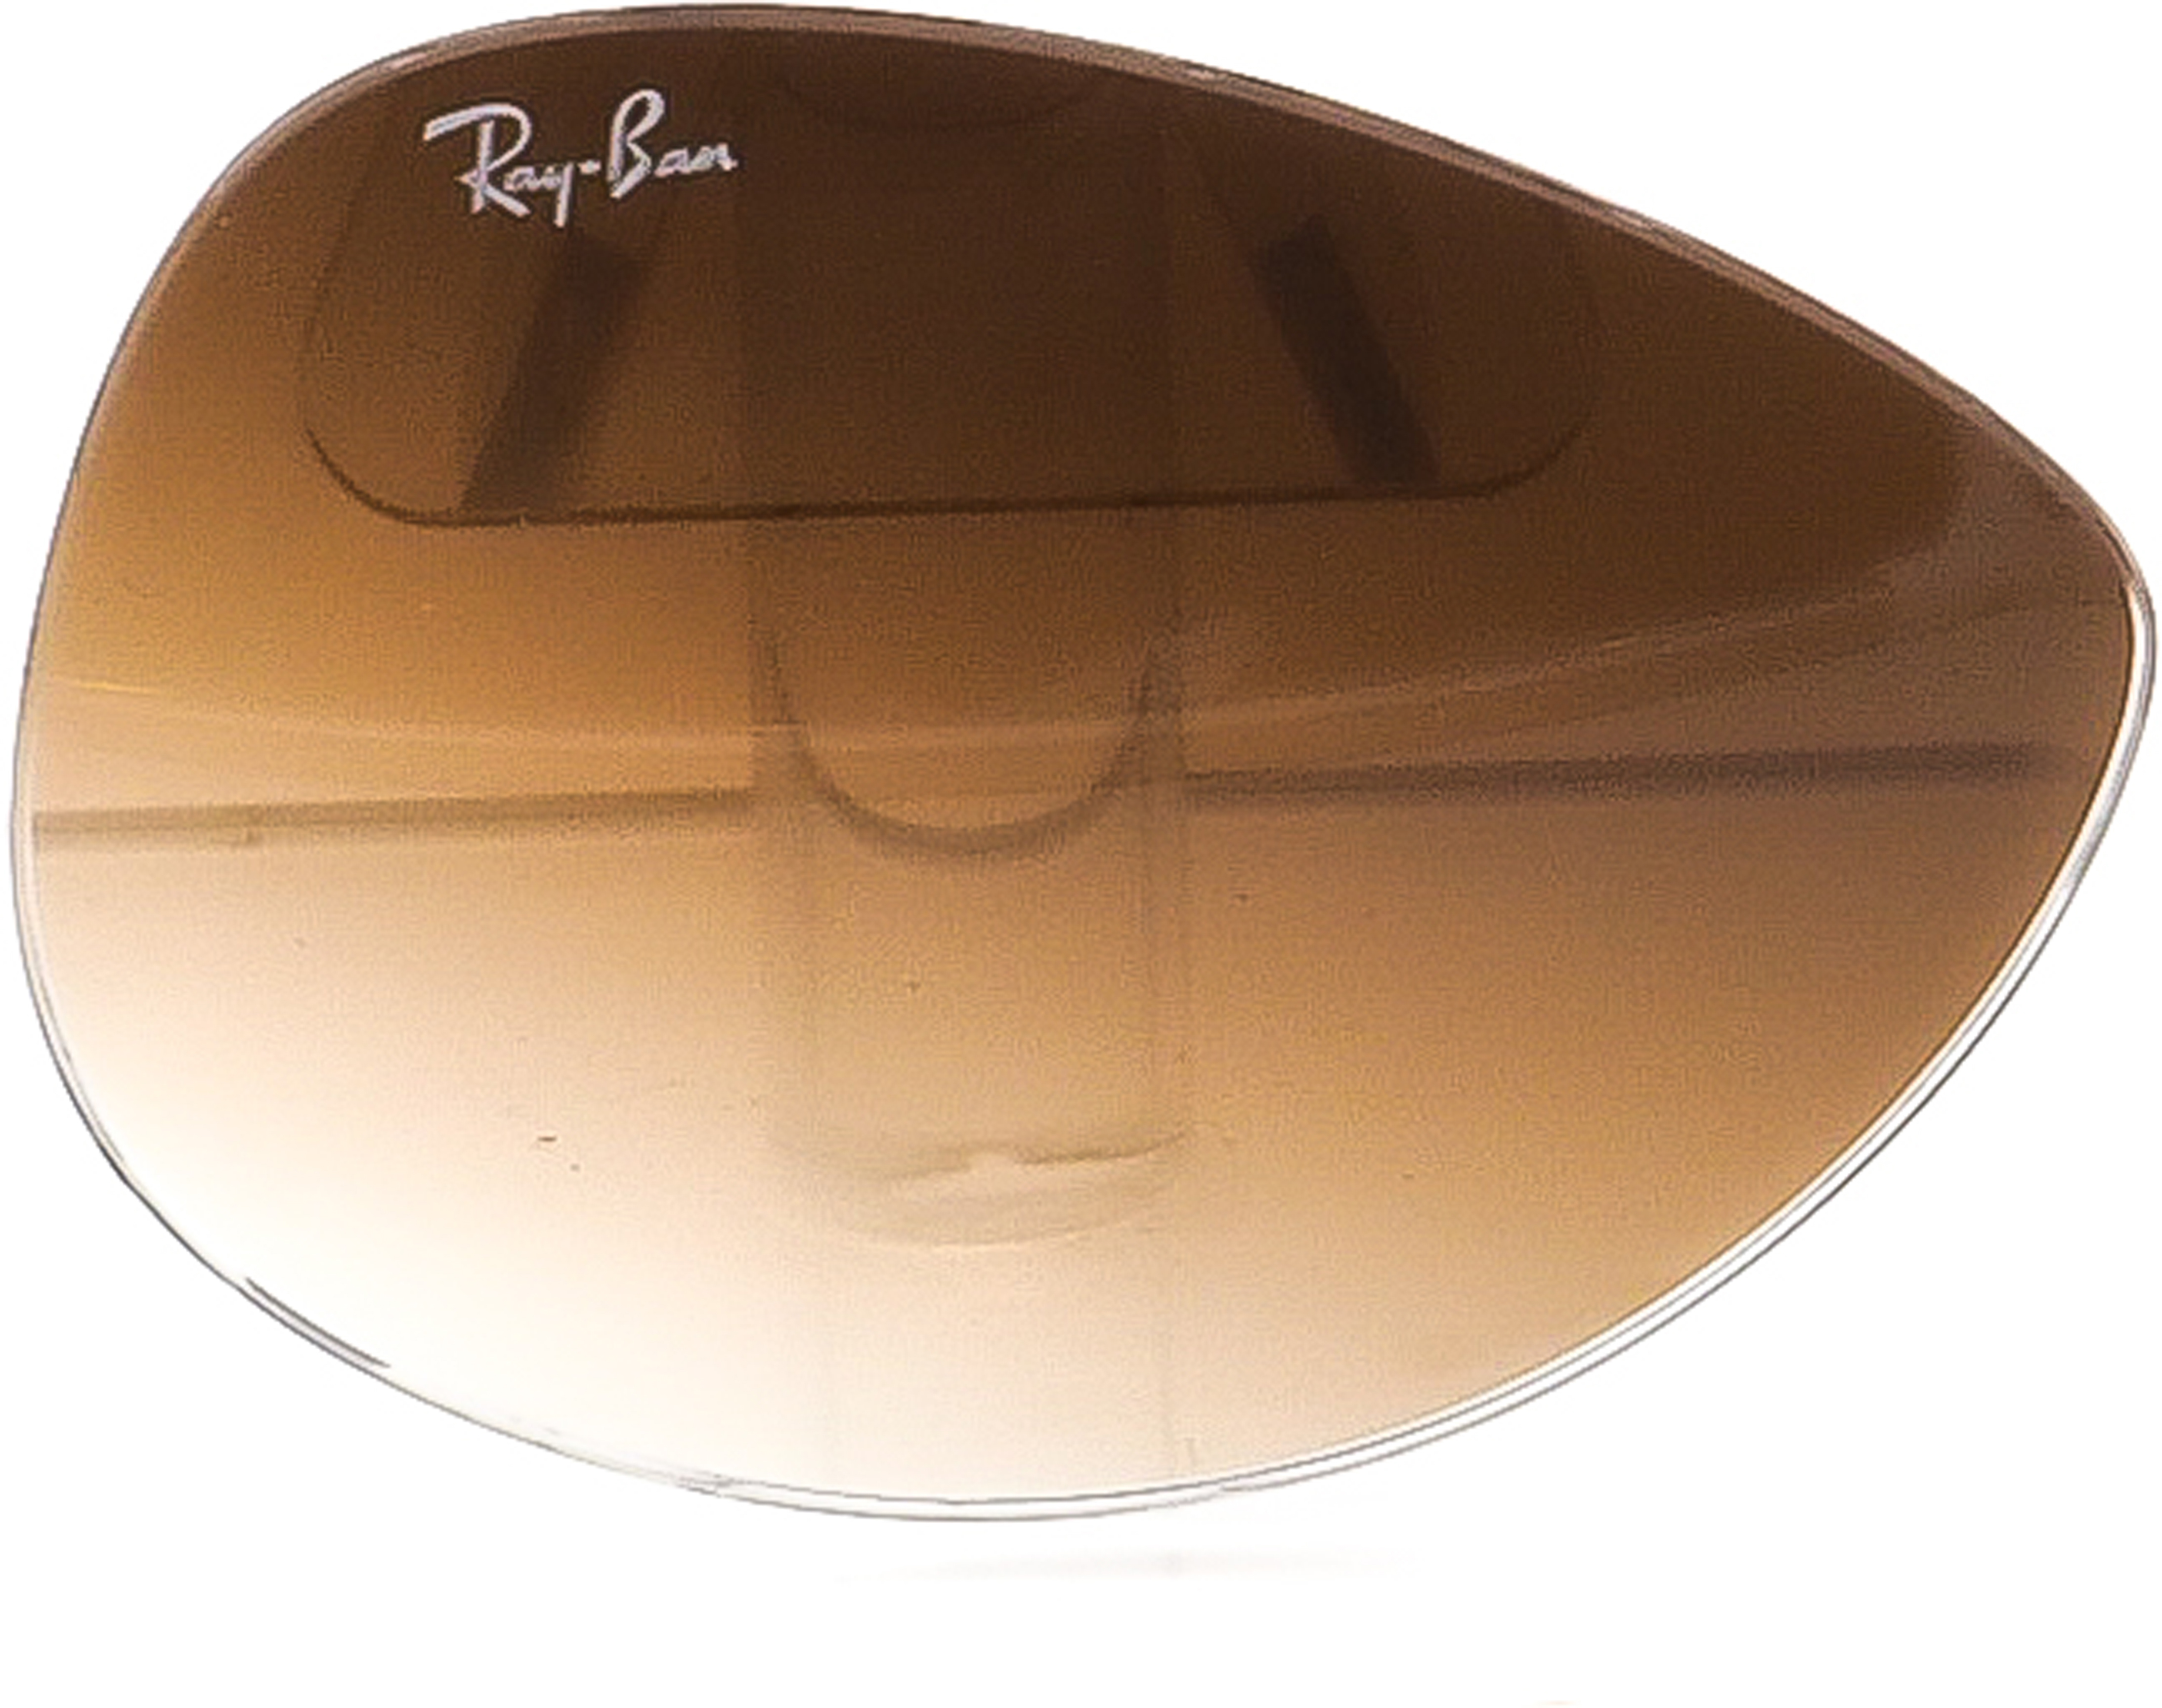 Ray Ban RB 8301 004/51 2N Single Lens Only Sunglasses